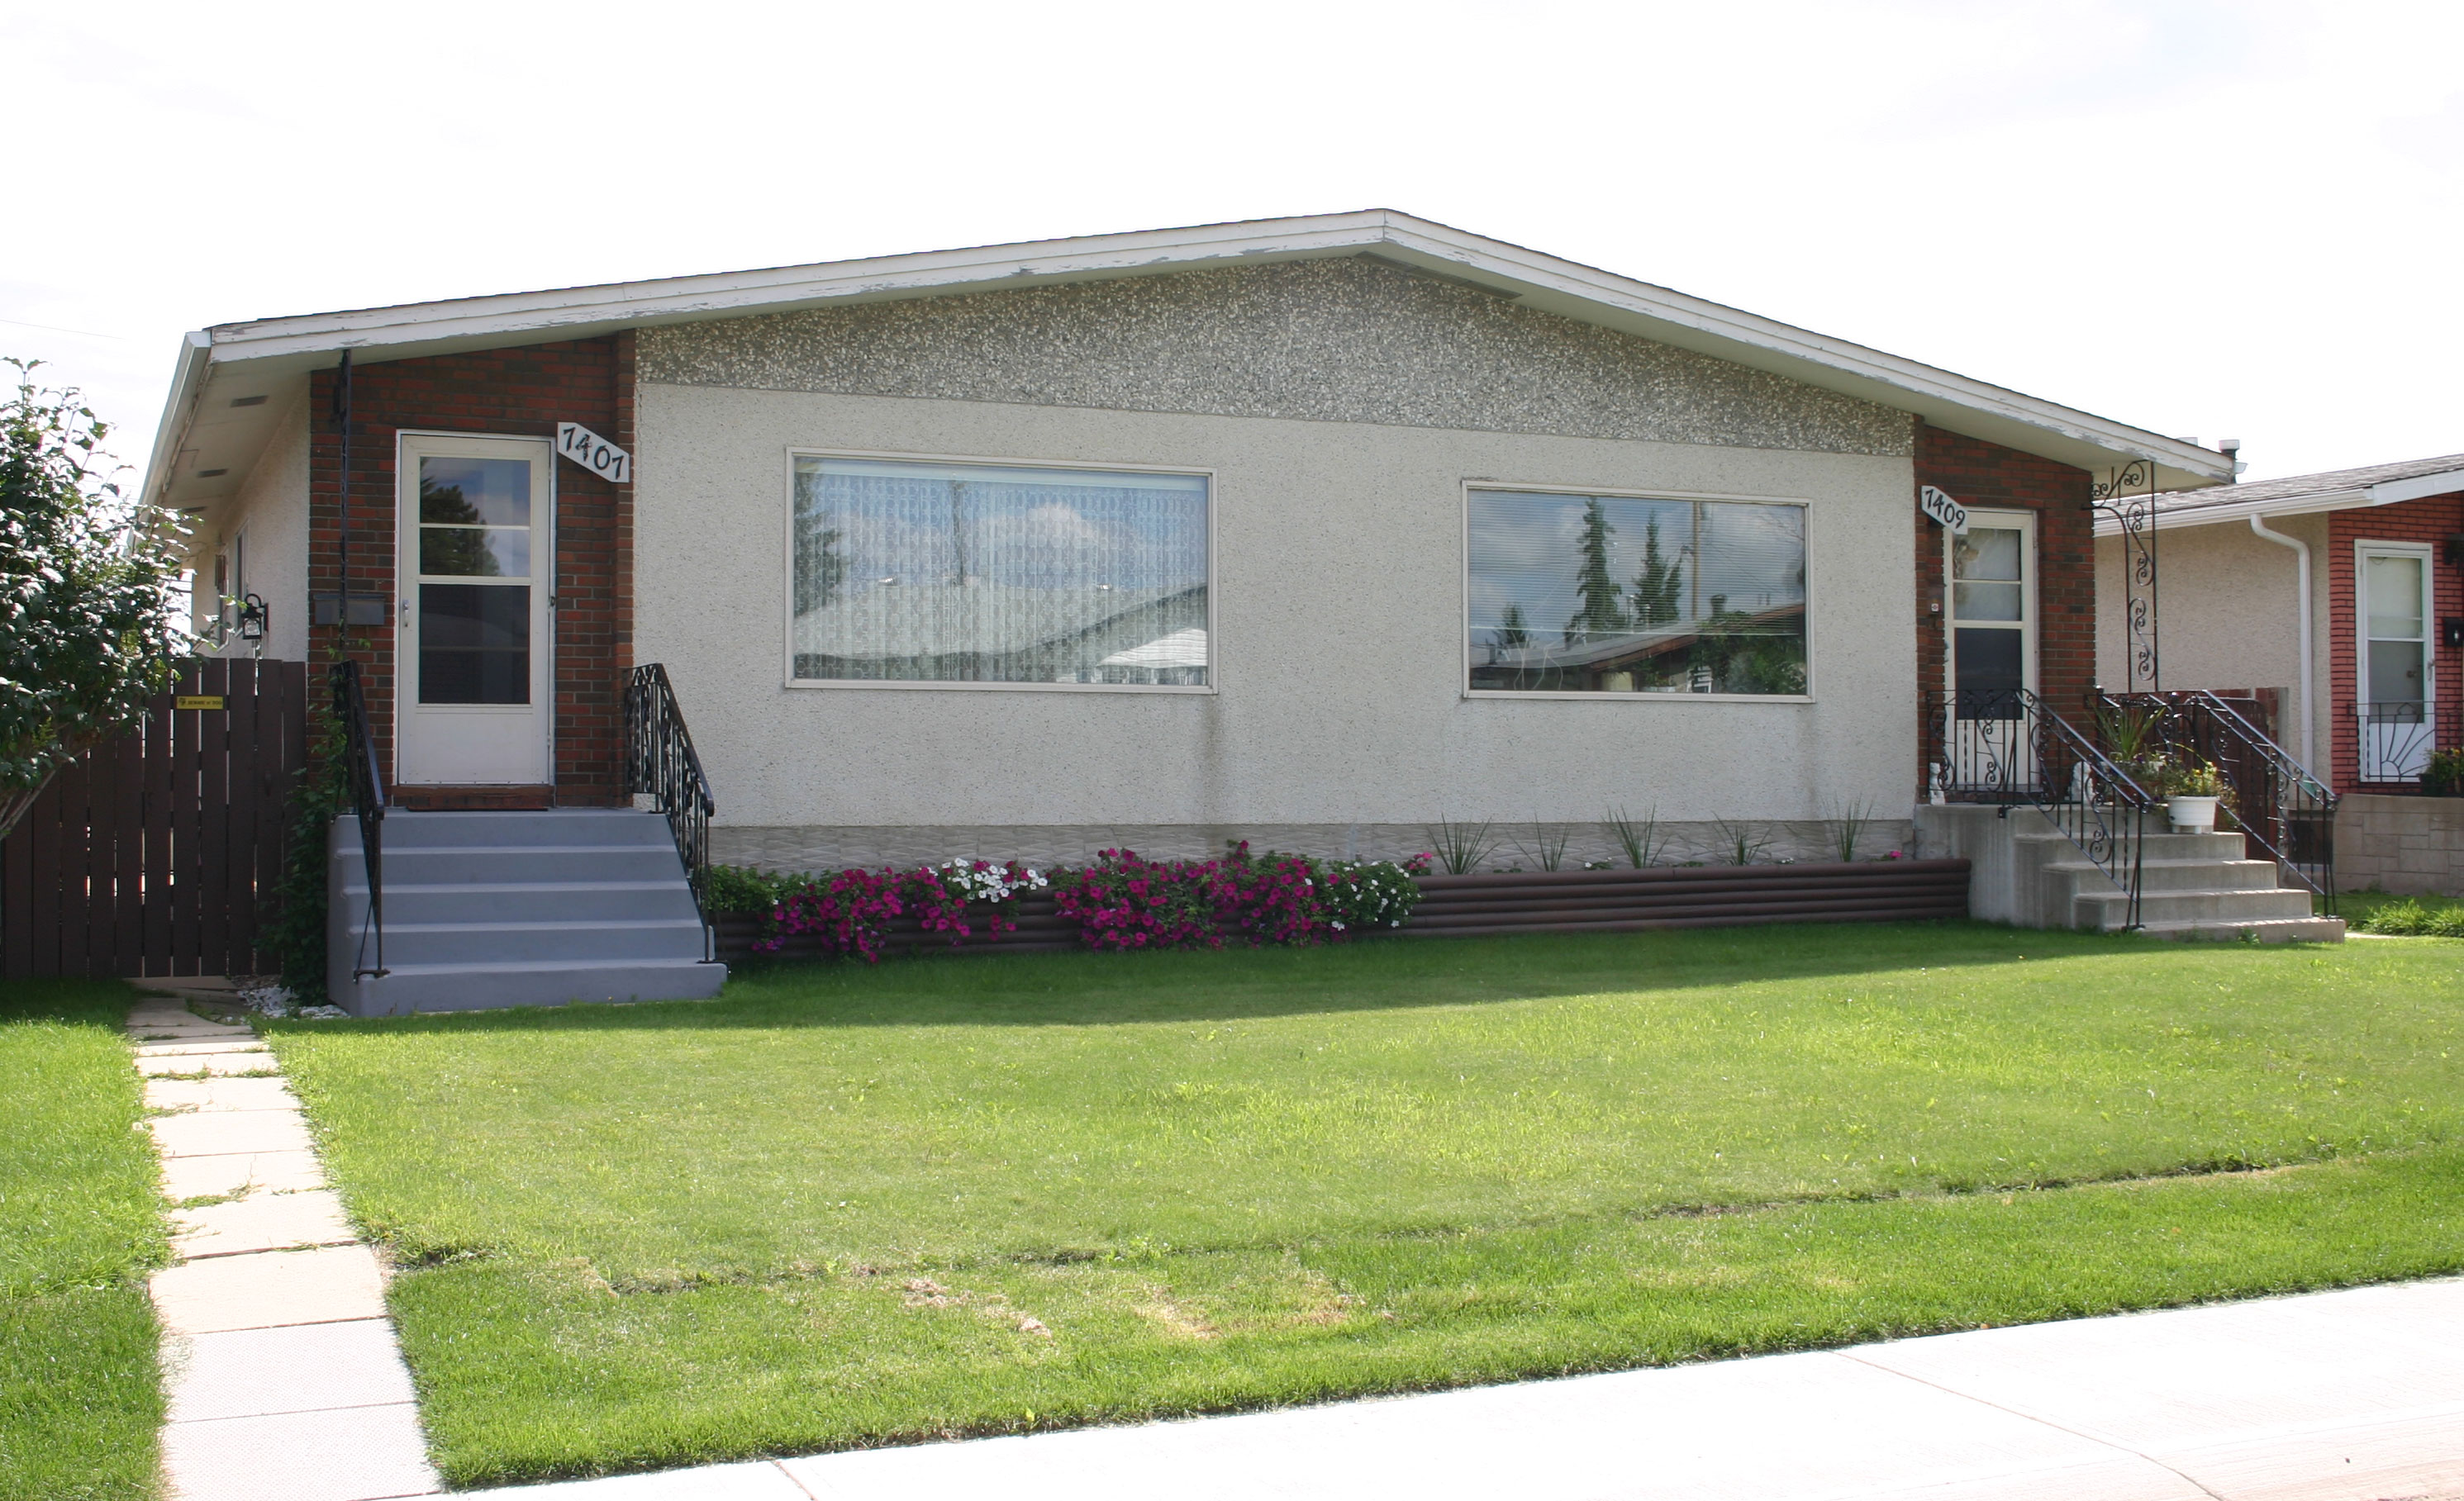 Duplex On RF3 Zoned Lot In King Edward